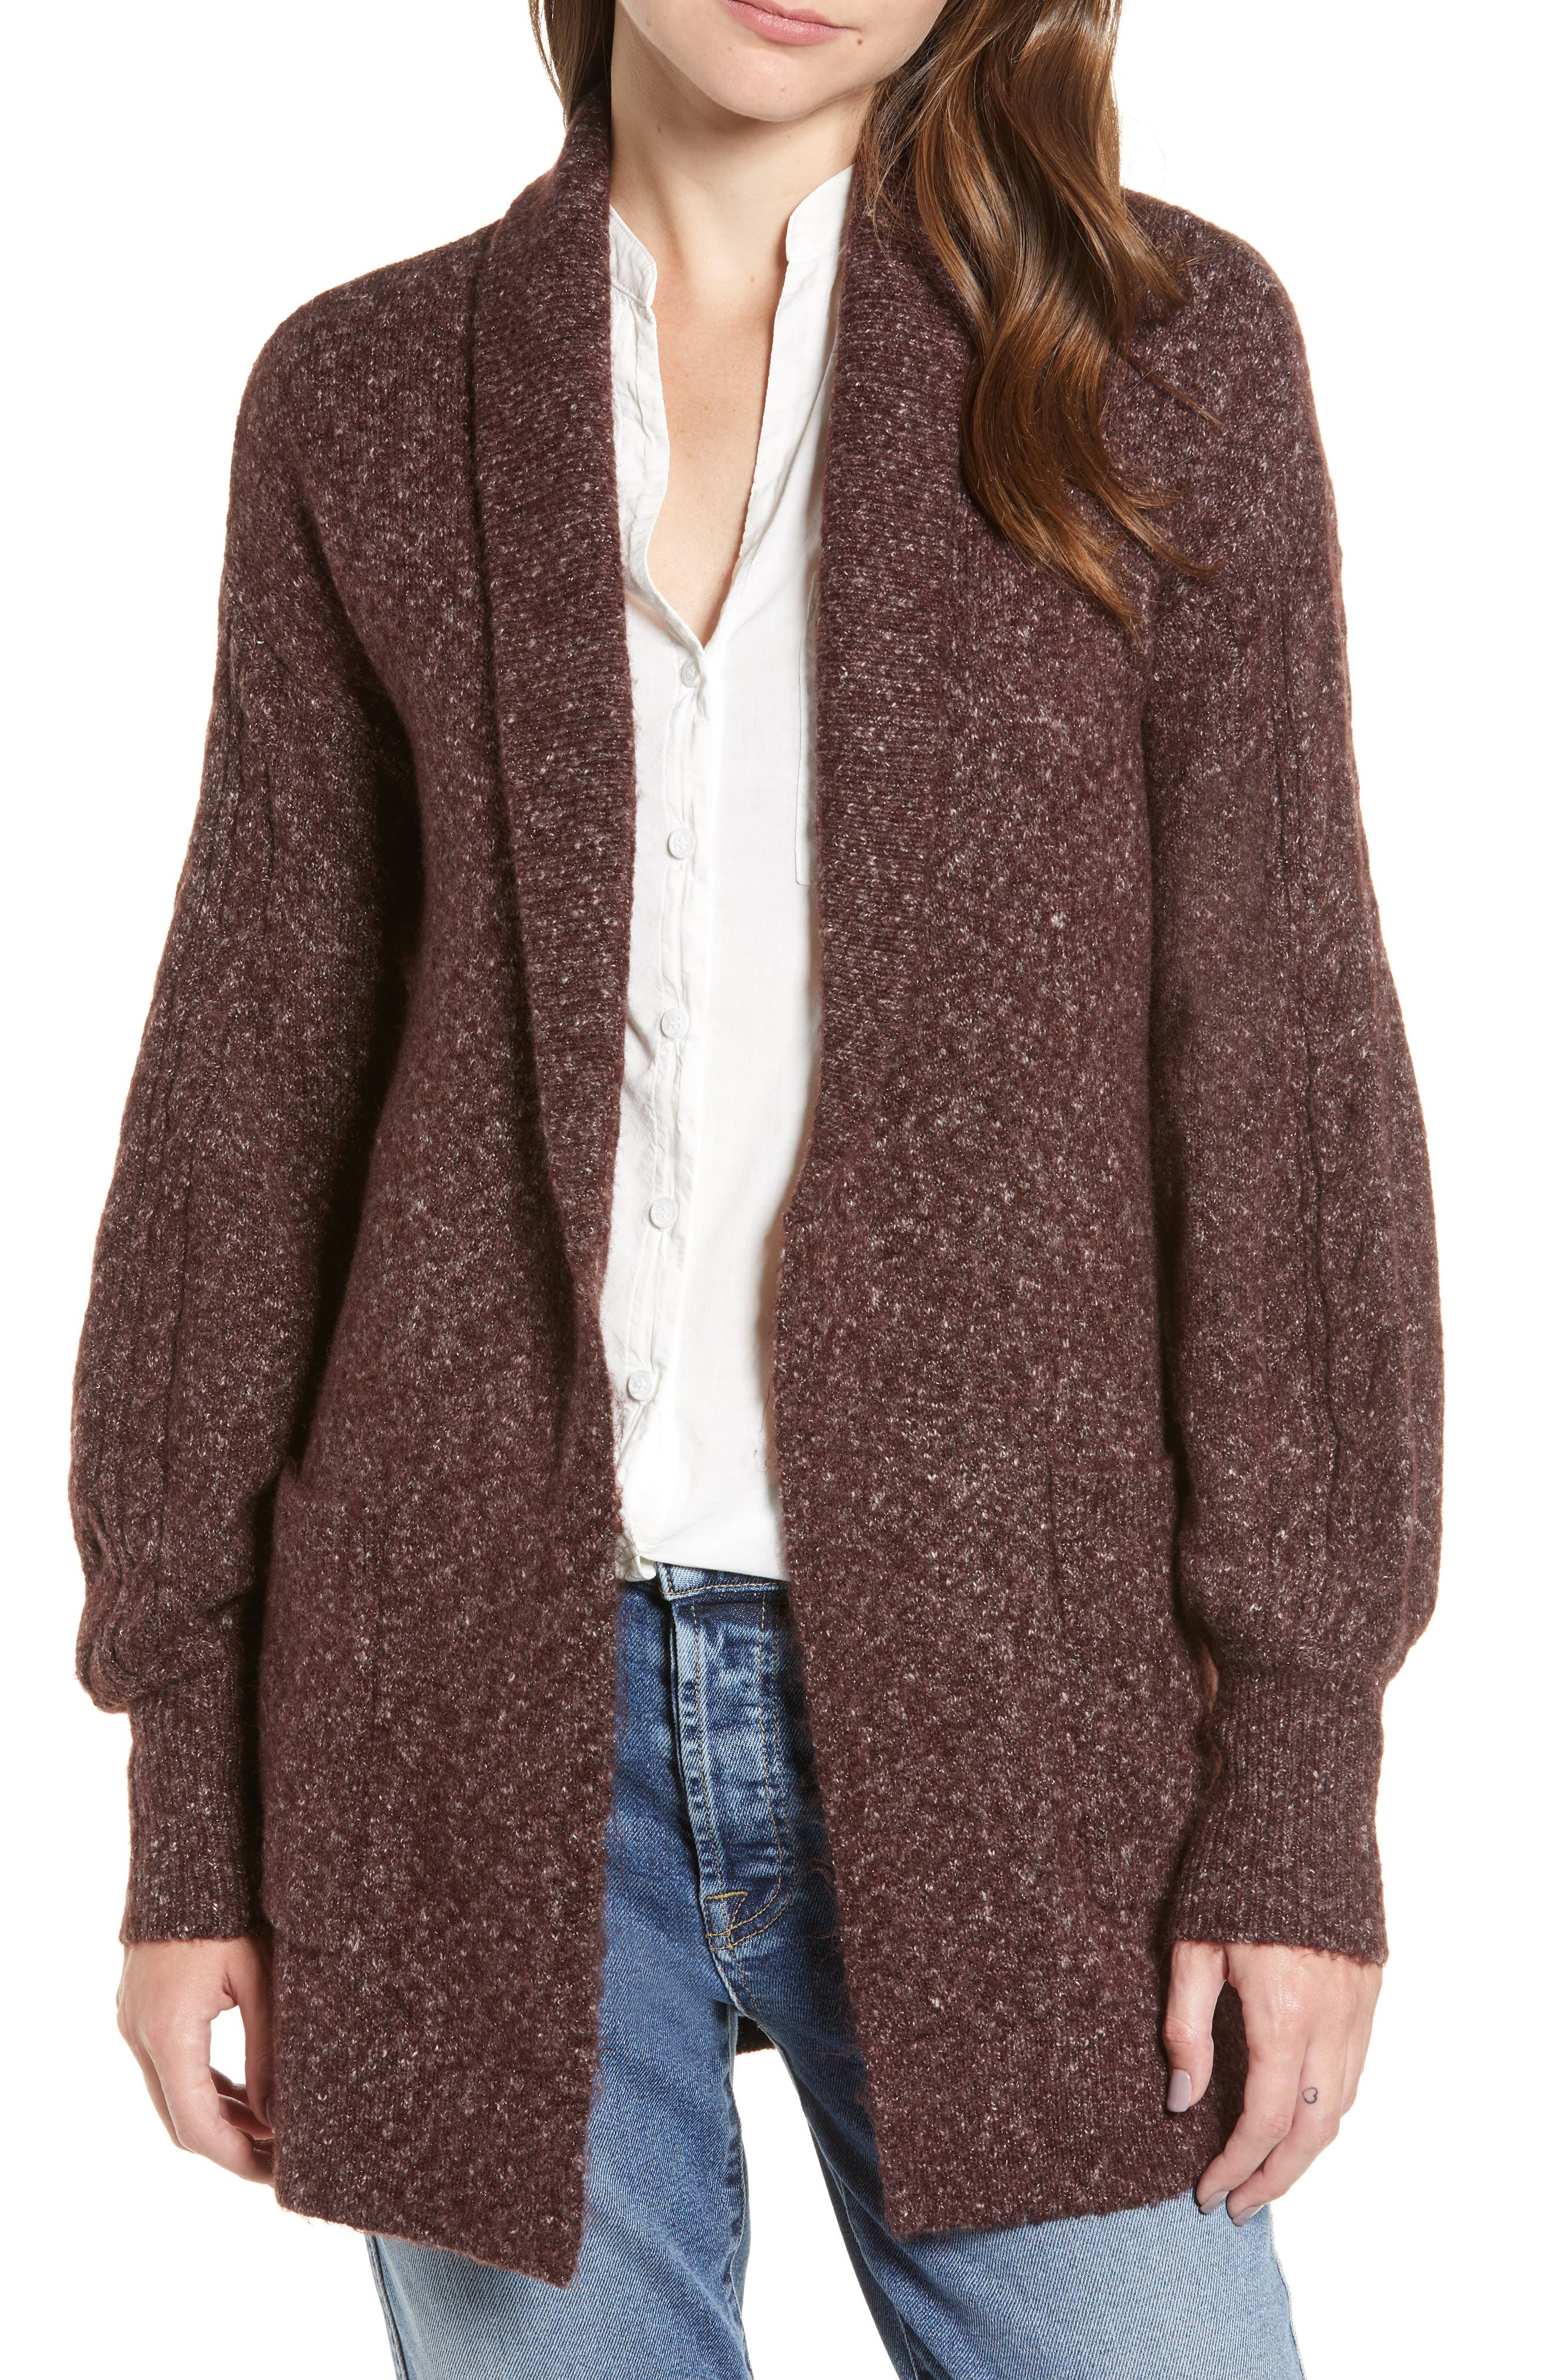 Longline Cardigan,                         Main,                         color, BURGUNDY FUDGE